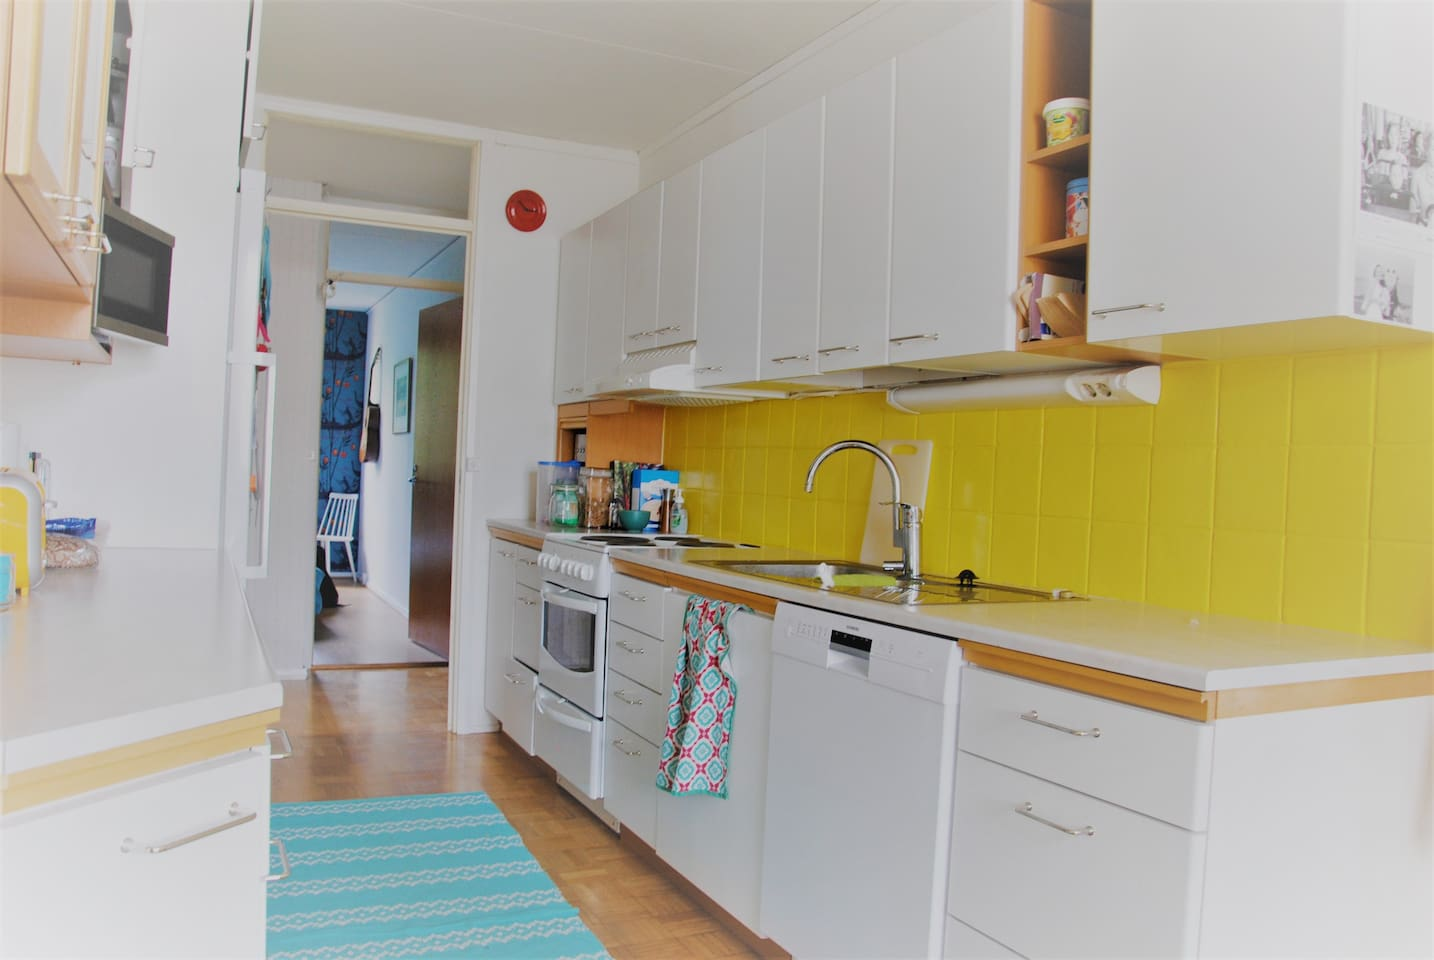 Kitchen with dishwasher, oven&stove, toaster, blender and coffee machine.